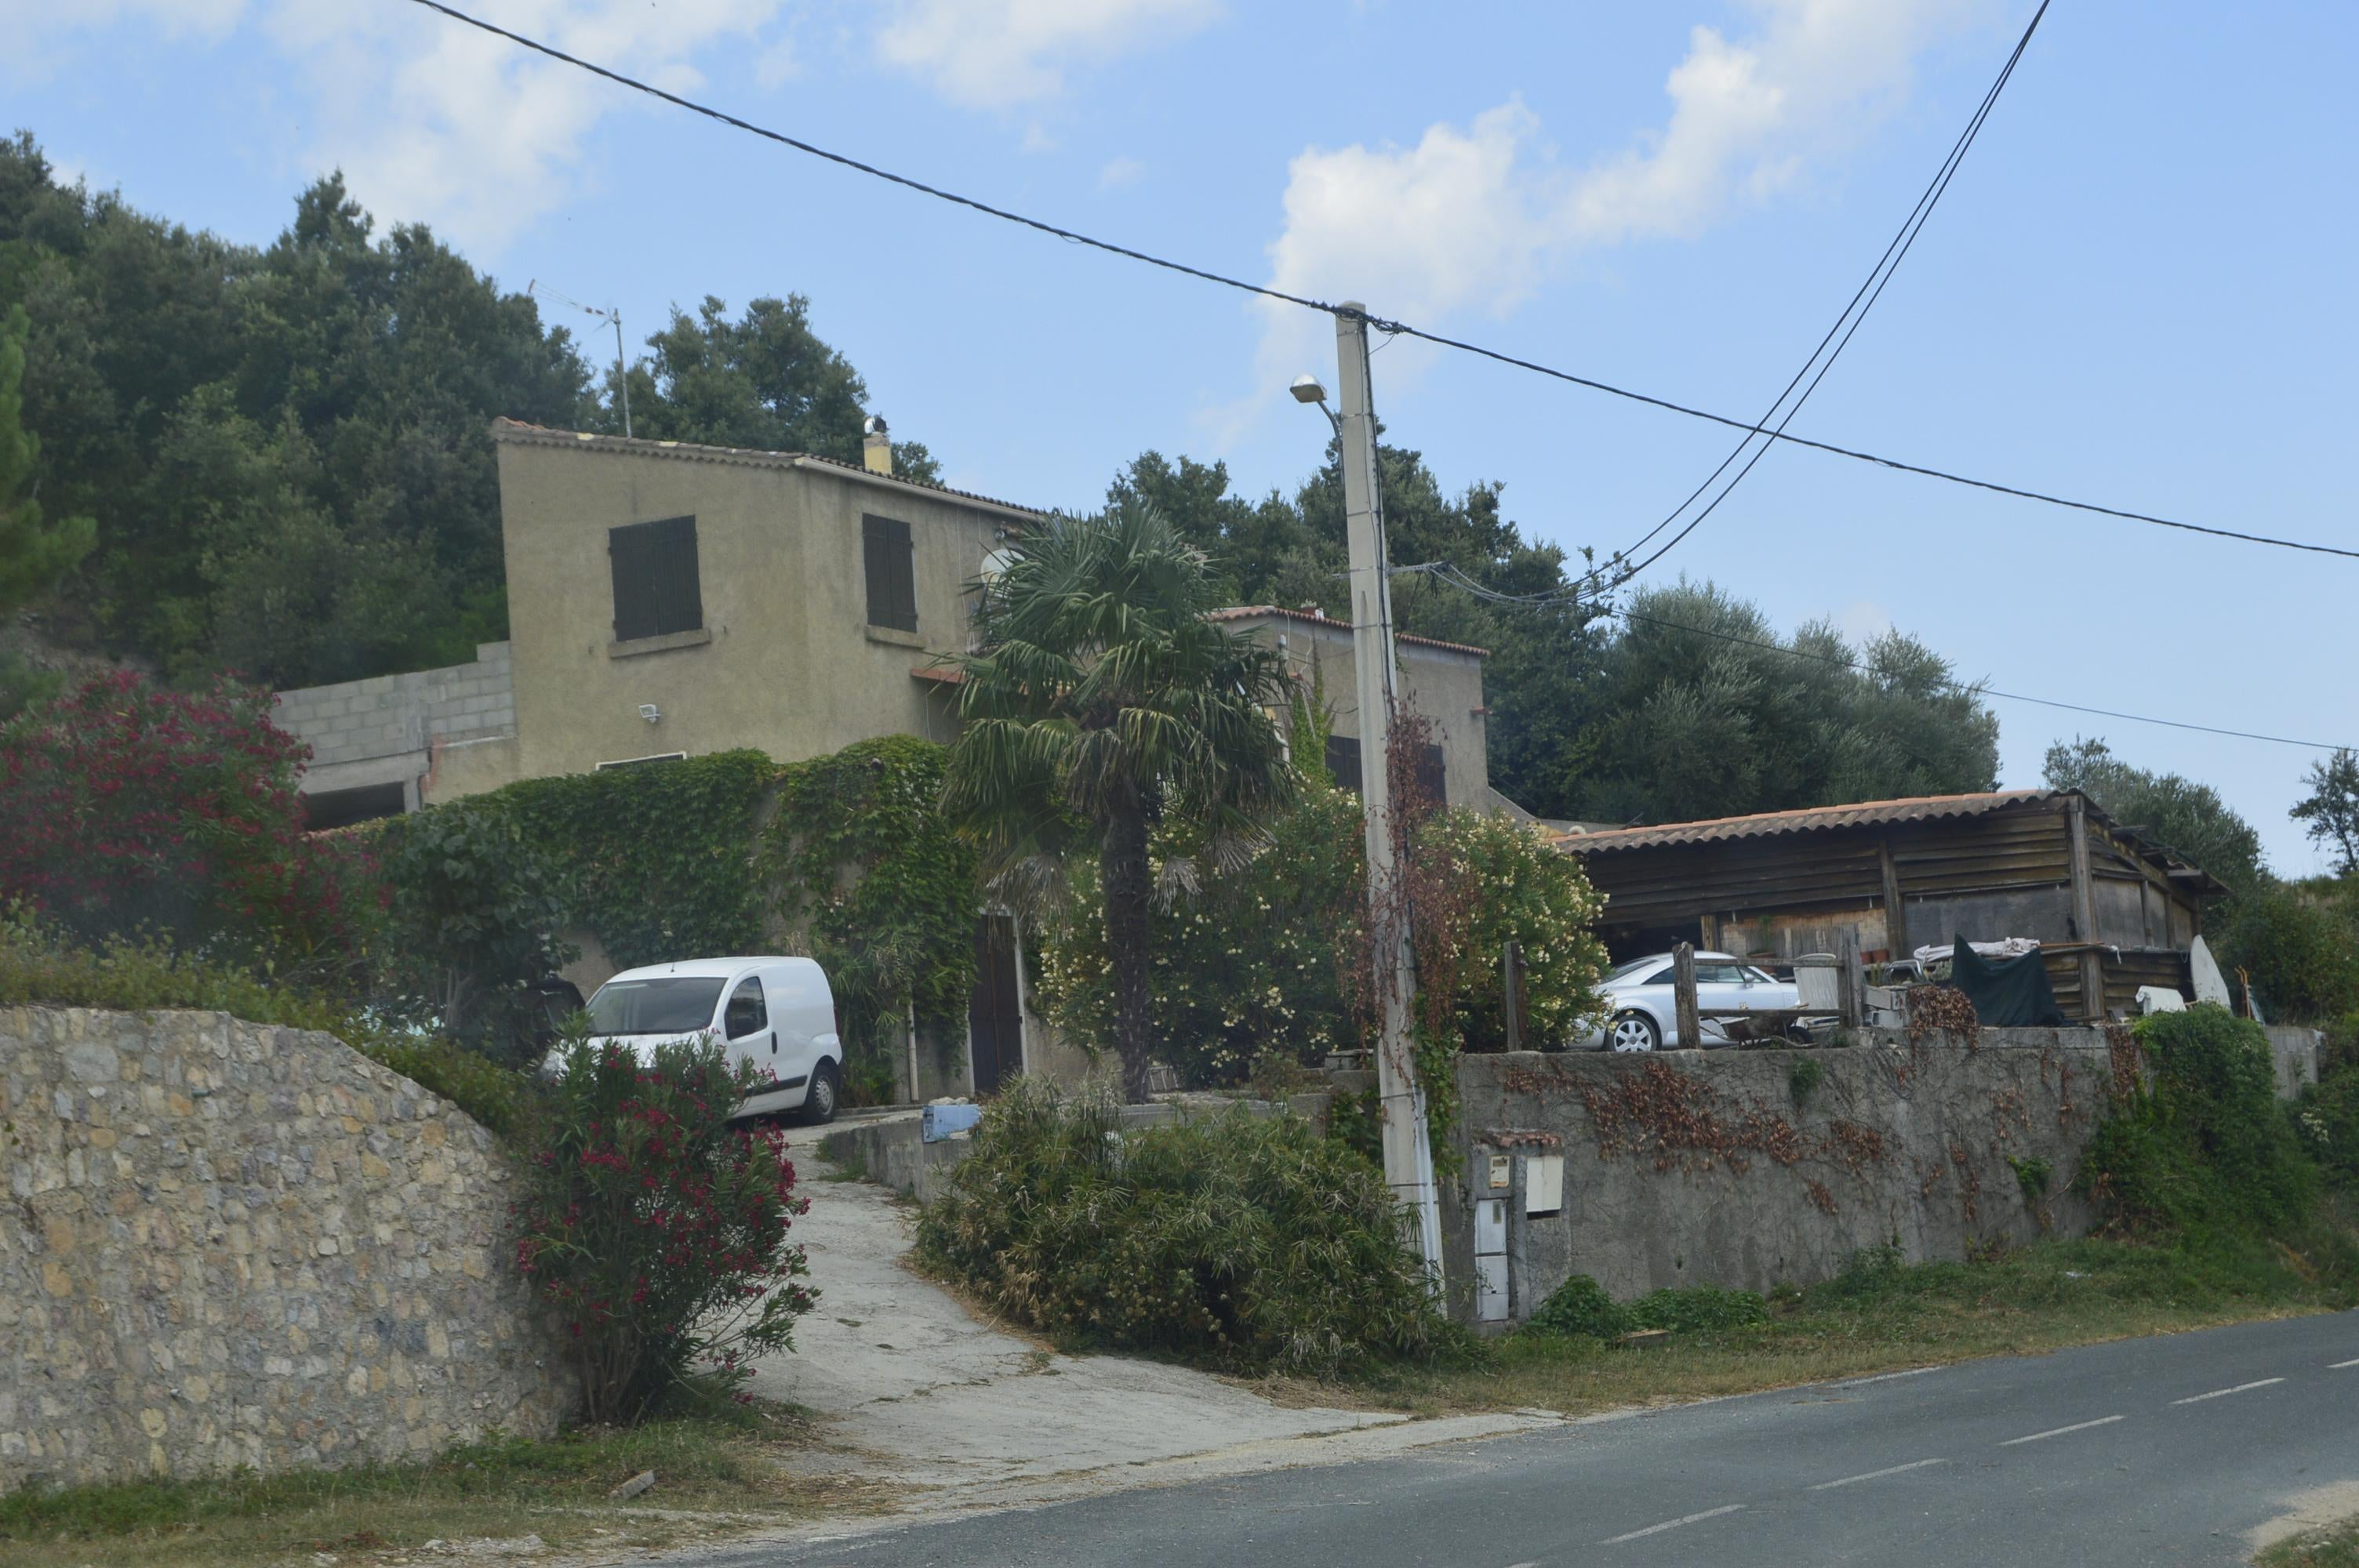 House in Tralonca